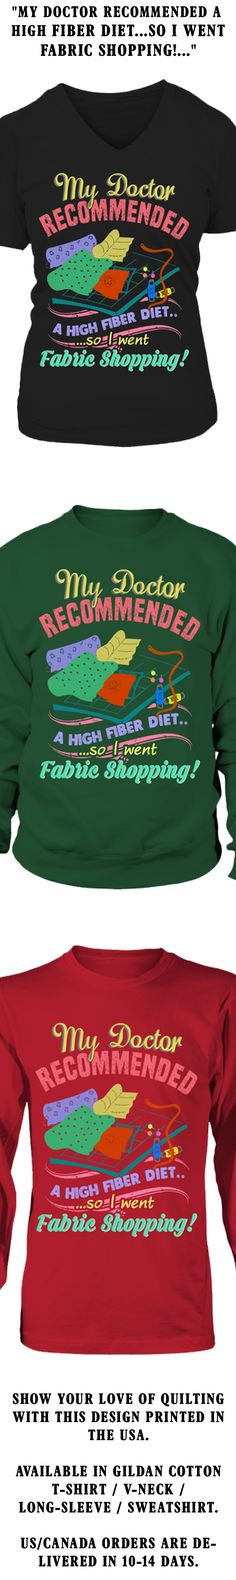 My Doctor Recommend A High Fiber Diet...So I Went Fabric Shopping!...  Show your love of Quilting with this design printed in the USA.  Available in Gildan Cotton T-Shirt / V-Neck / Long-Sleeve / Sweatshirt.   US/Canada orders are delivered in 10-14 days.